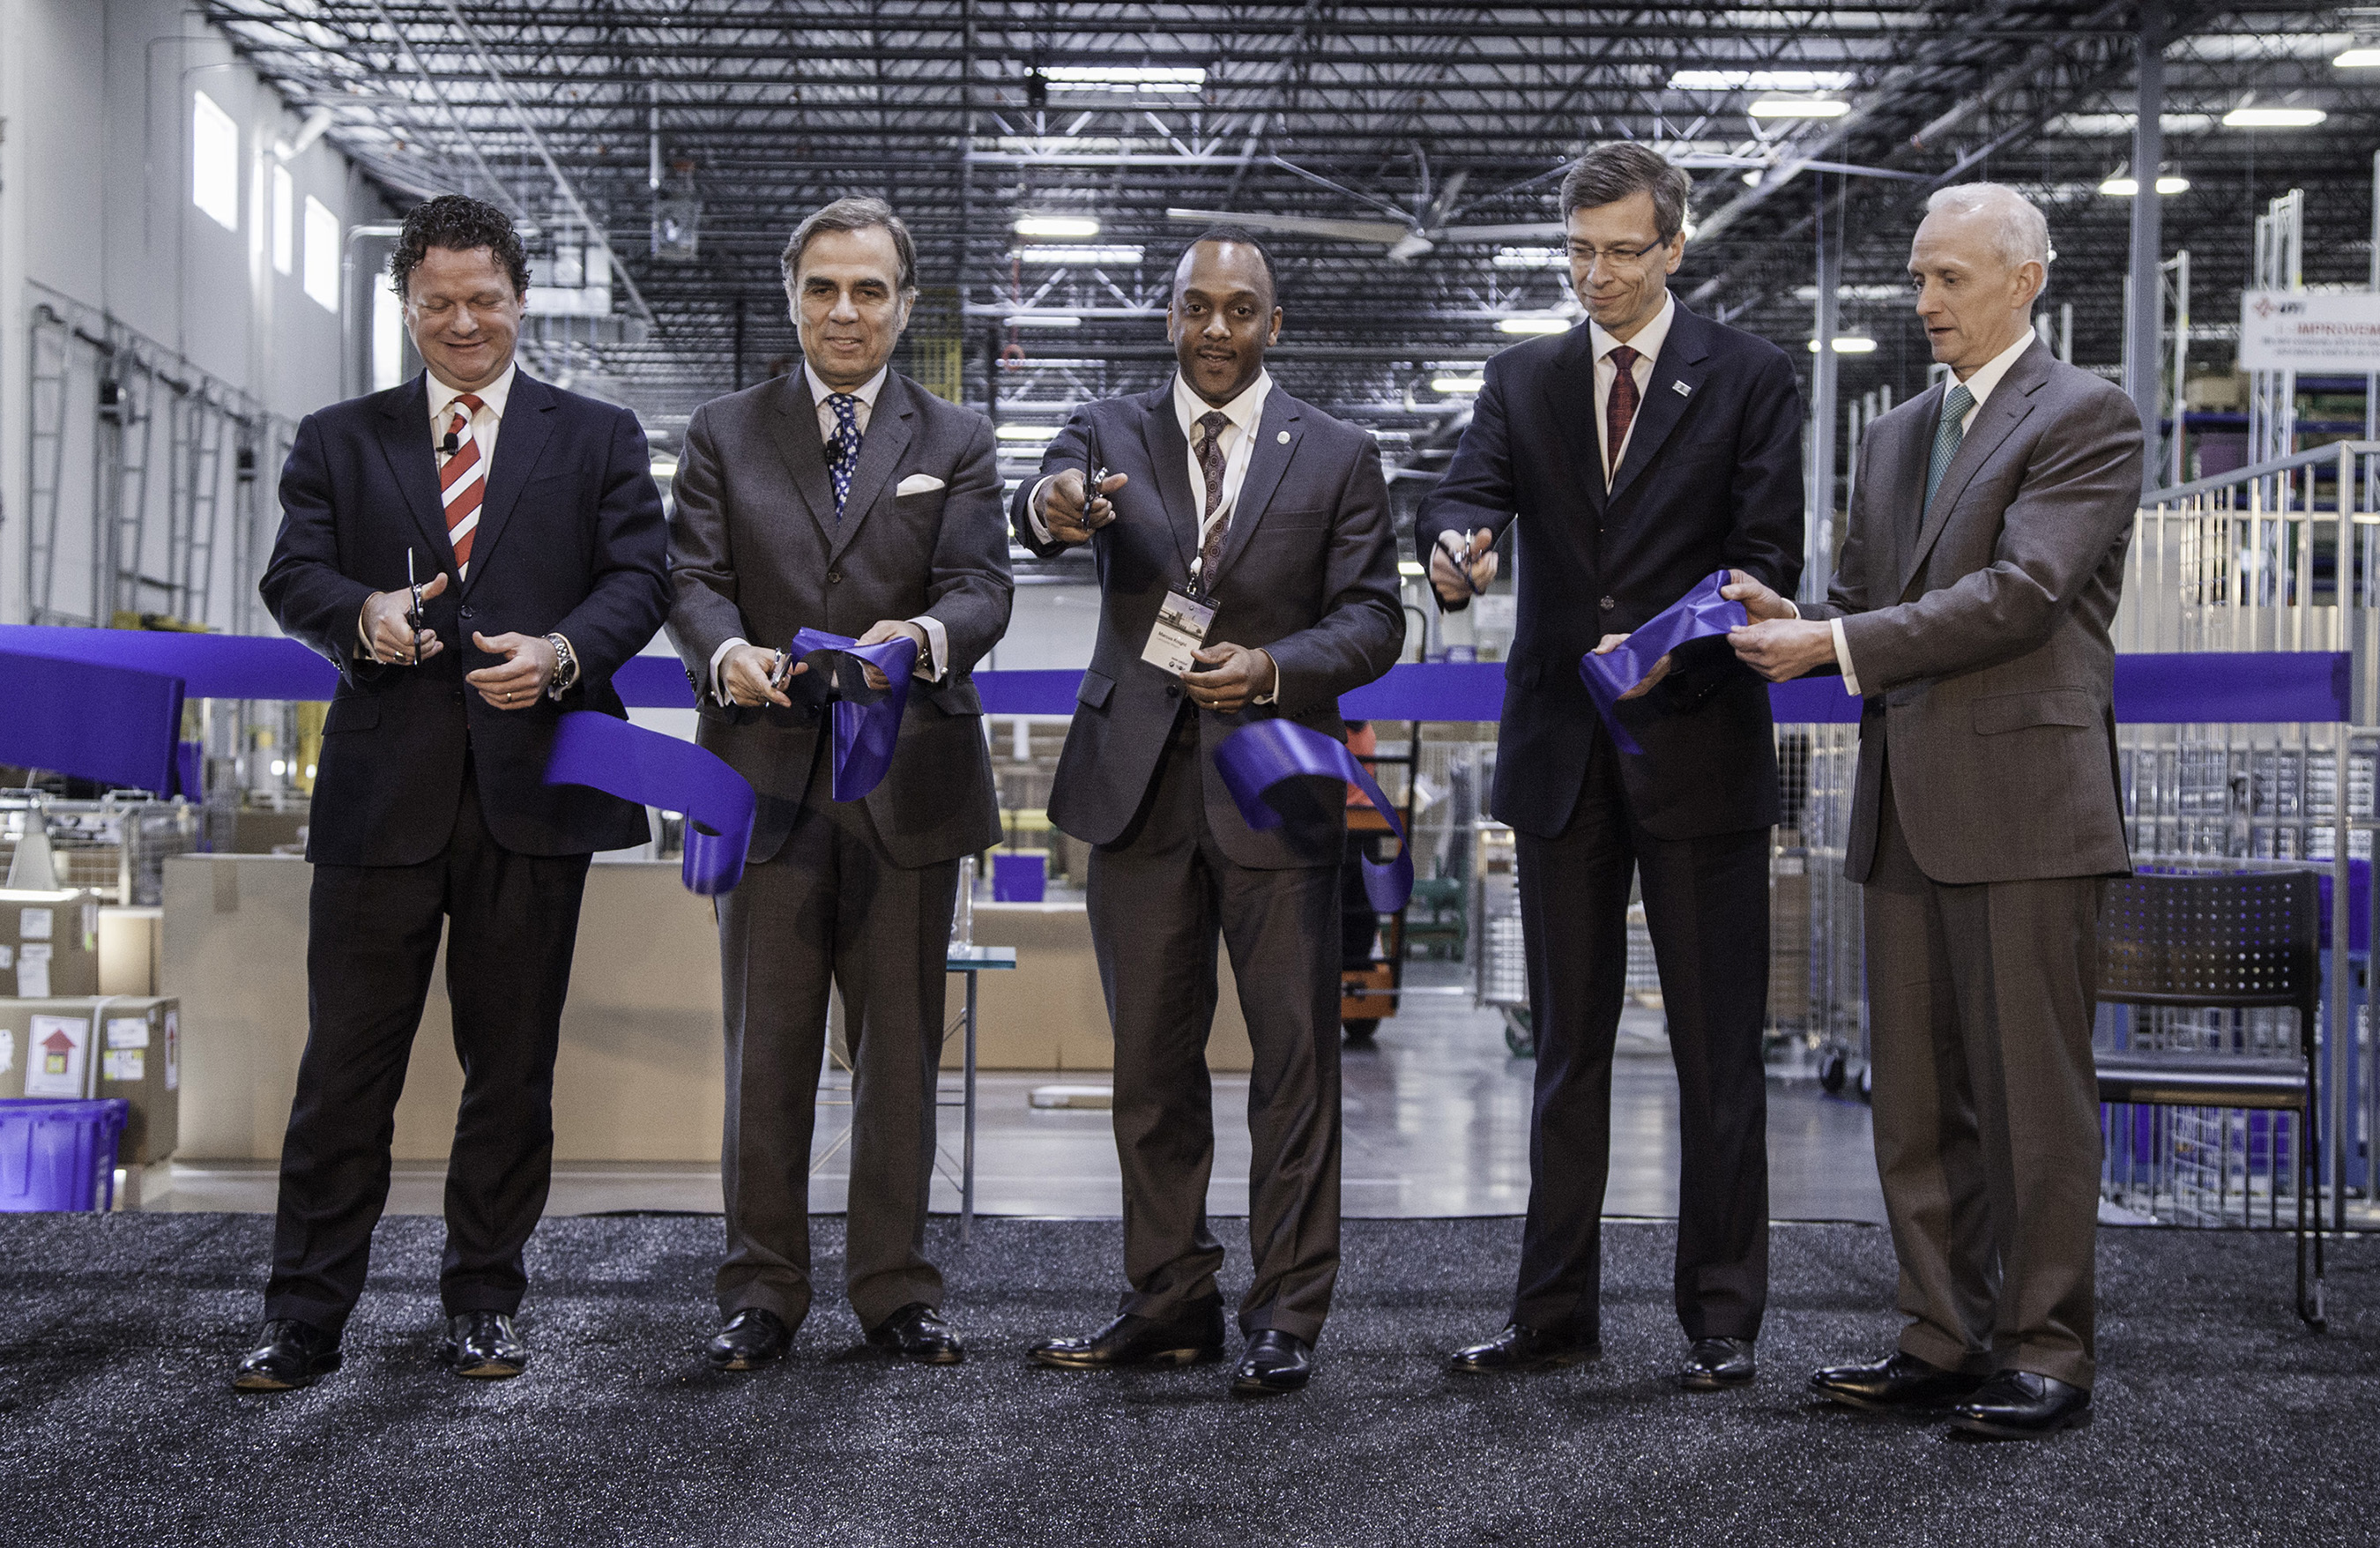 Craig Westbrook, Vice President - Aftersales, BMW of North America; Ludwig Willisch, President and CEO, BMW of North America; Marcus Knight, Mayor, Lancaster, Texas; Stefan Sengewald, Executive Vice President and CFO, BMW of the Americas and Lawrence P. Demski, Department Head, Parts Logistics, BMW of North America cut the ribbon to officially open the BMW Dallas Regional Parts Distribution Center (RDC) in Lancaster, Texas on January 27th, 2014. The fully-secured, LEED Silver certified, state-of-the art RDC will serve the Southern Region of the dealer network and will supply everything BMW dealers need to service their customers. (Photo: Business Wire)